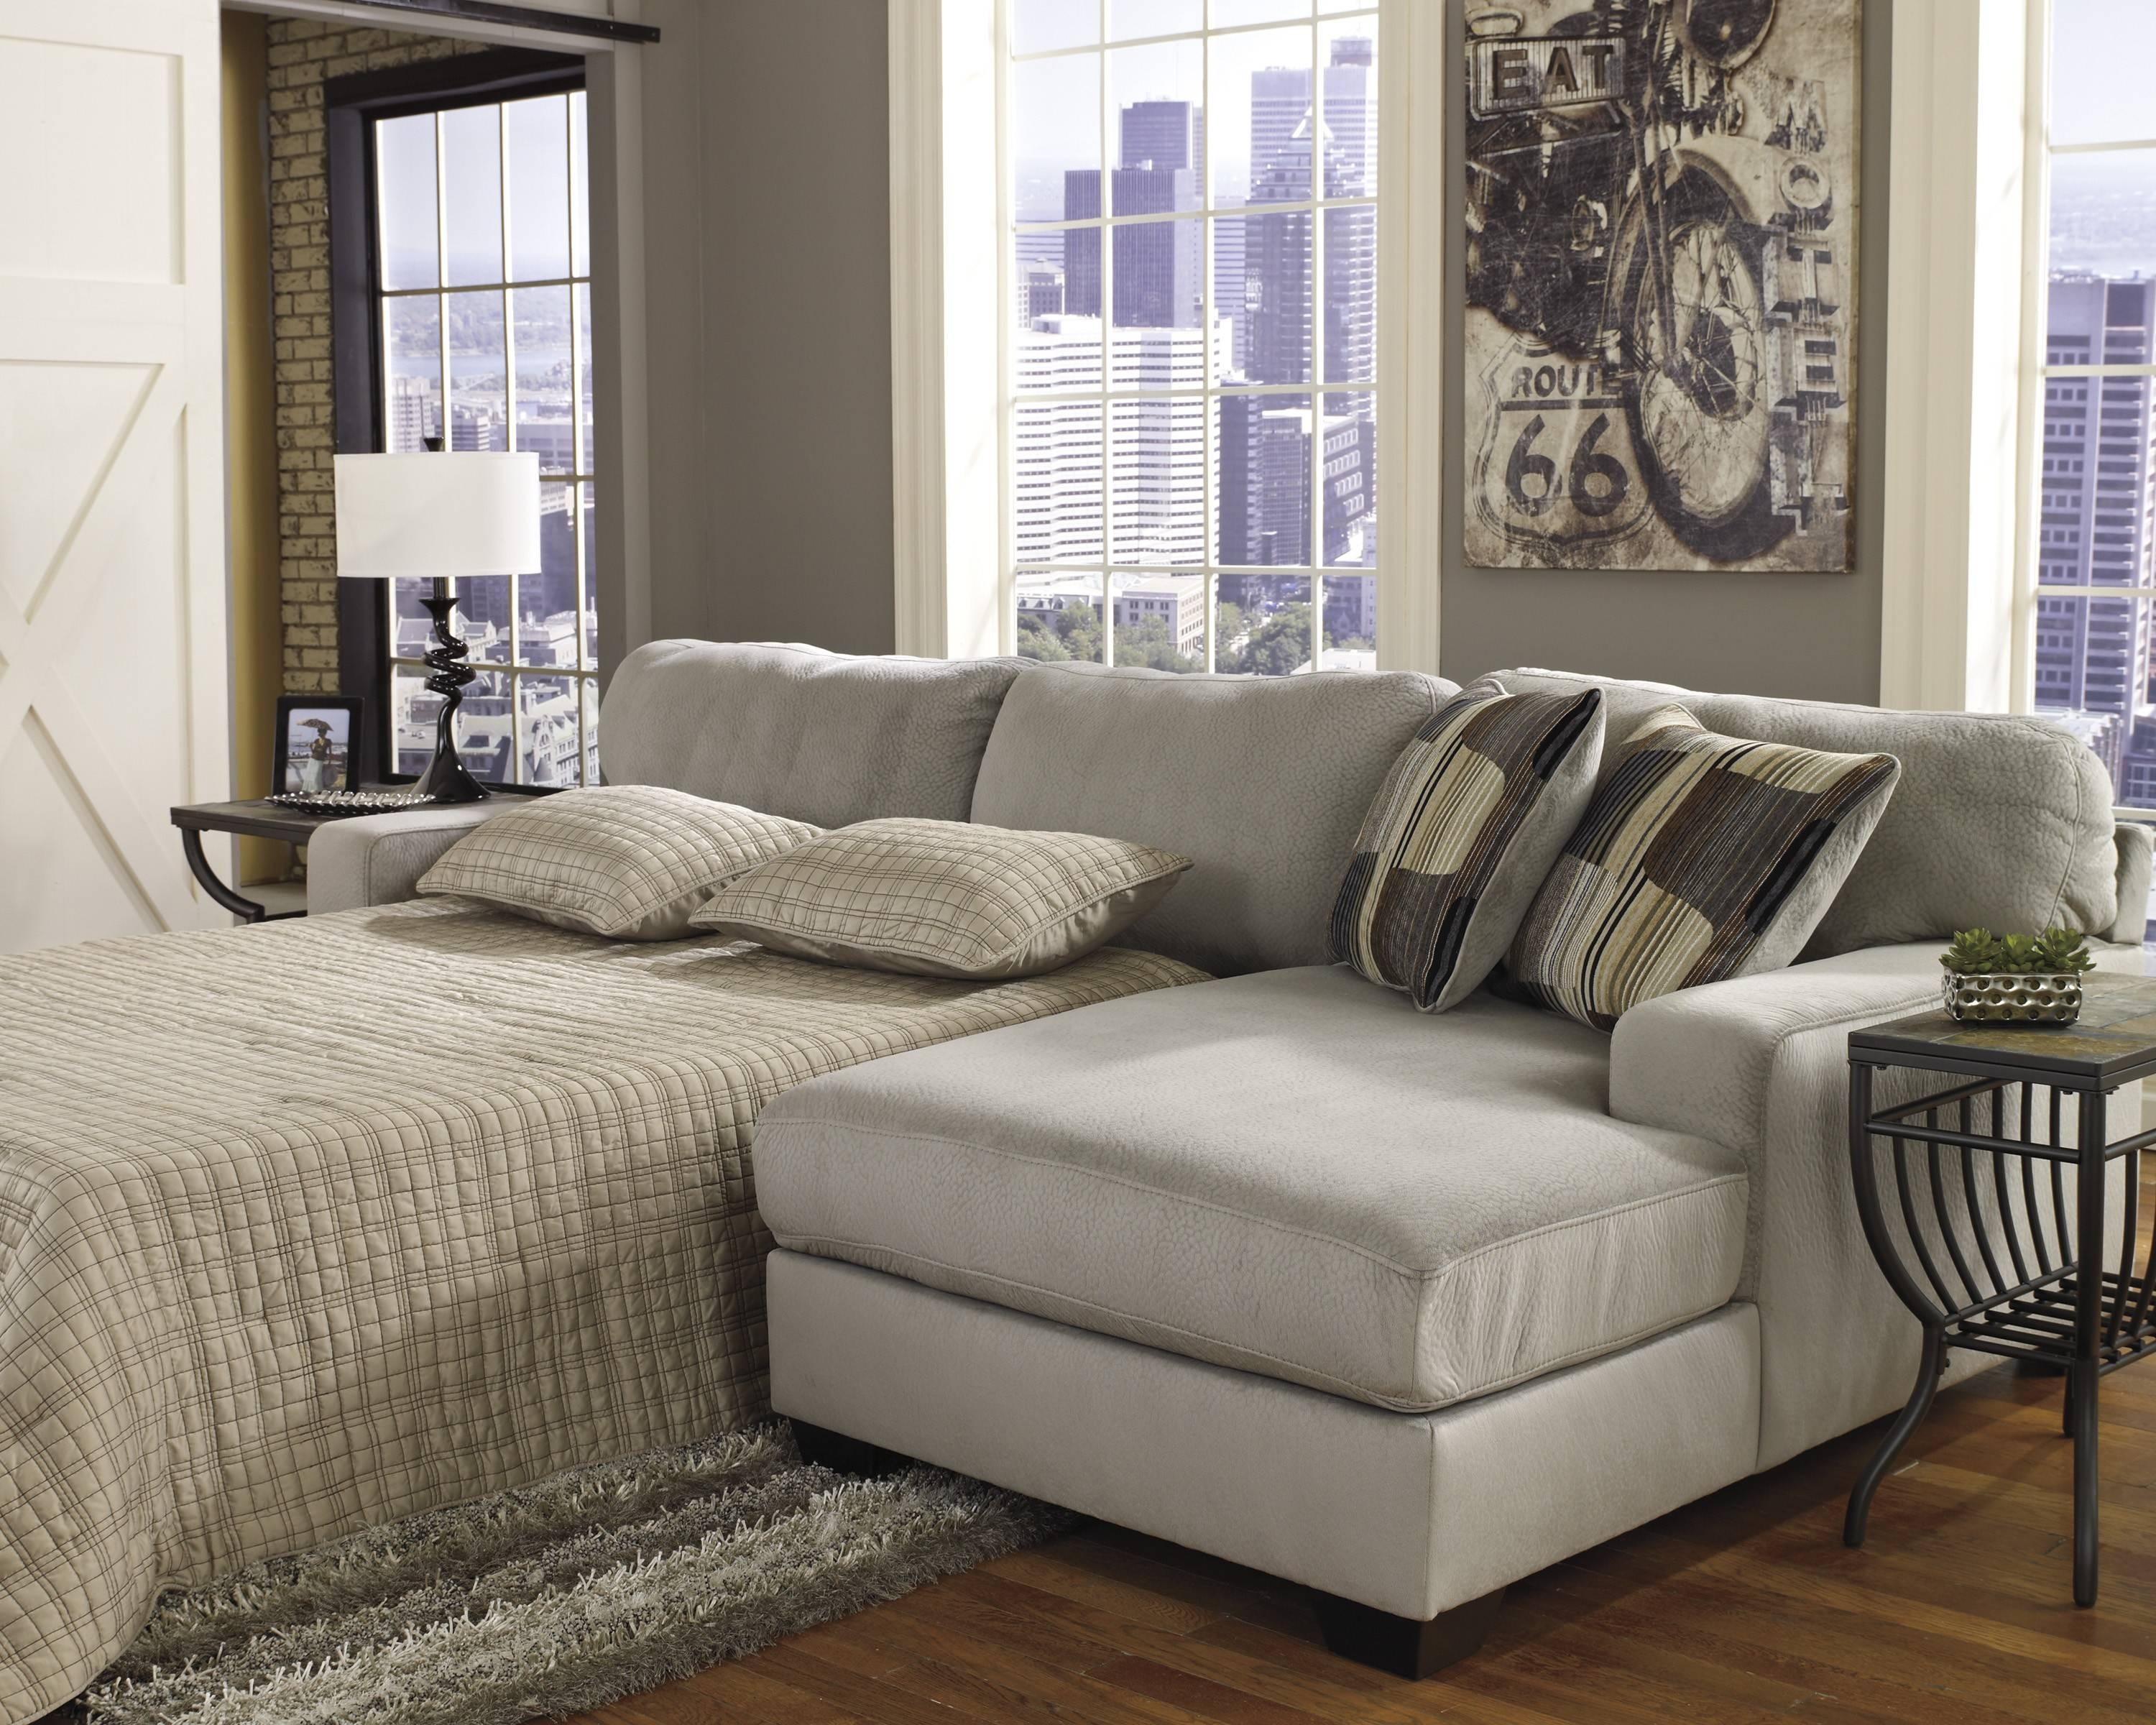 Cheap Sectional Sleeper Sofa - Cleanupflorida pertaining to Durable Sectional Sofa (Image 10 of 30)